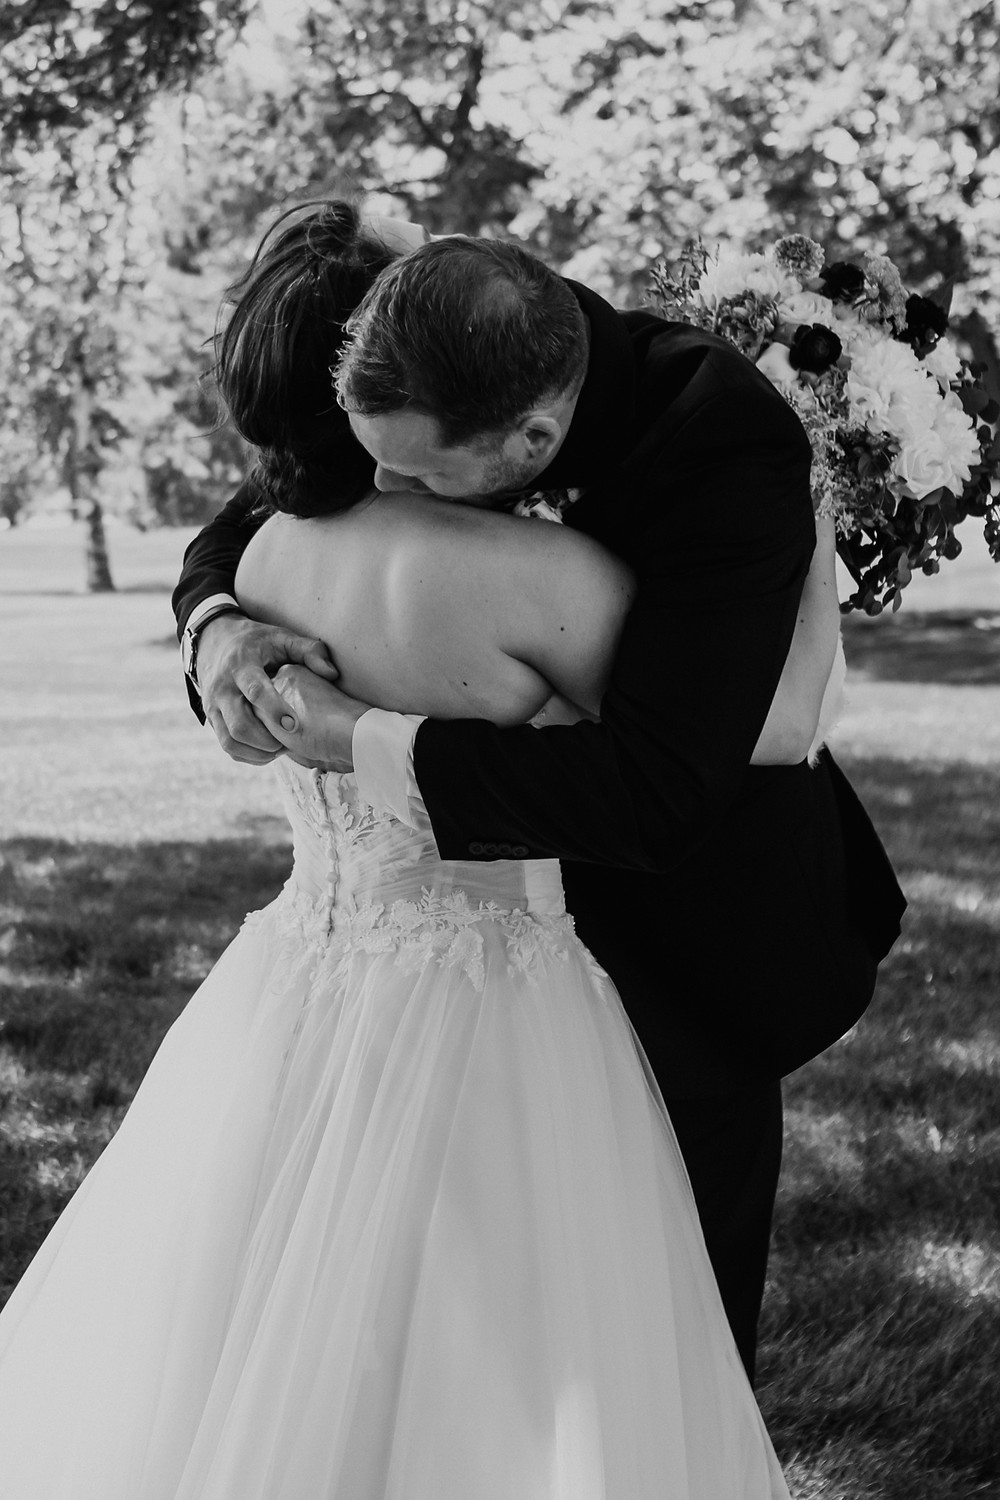 Lifestyle documentary wedding photography. Photographed by Nicole Leanne Photography.